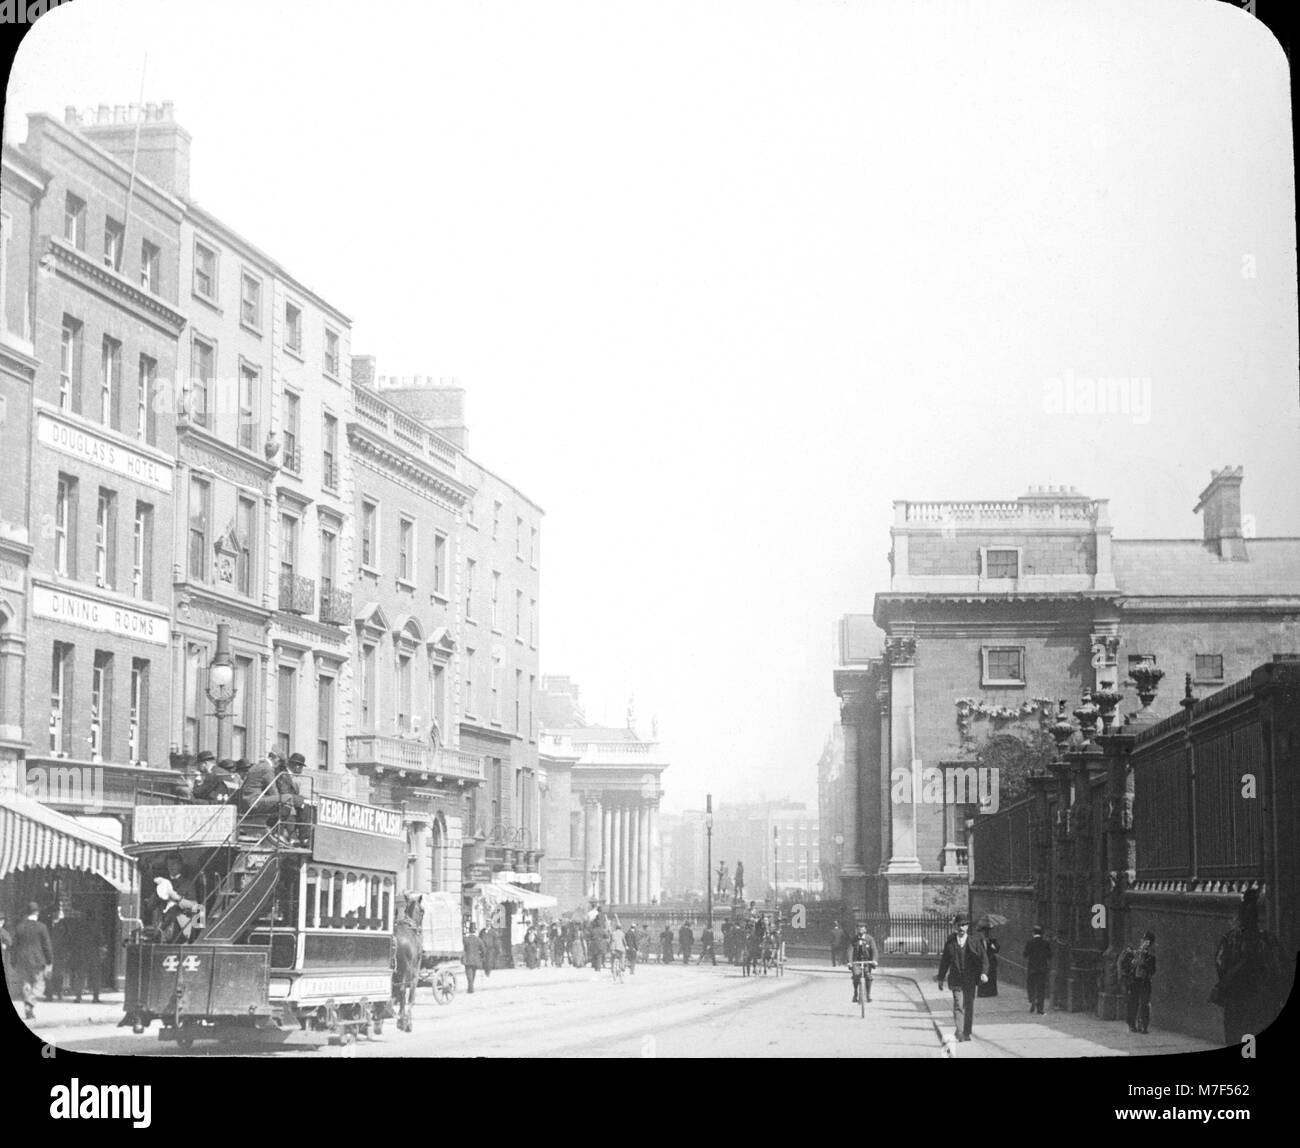 View looking down Grafton Street in Dublin during Victorian times. The Douglas's Hotel and Dining Rooms are - Stock Image